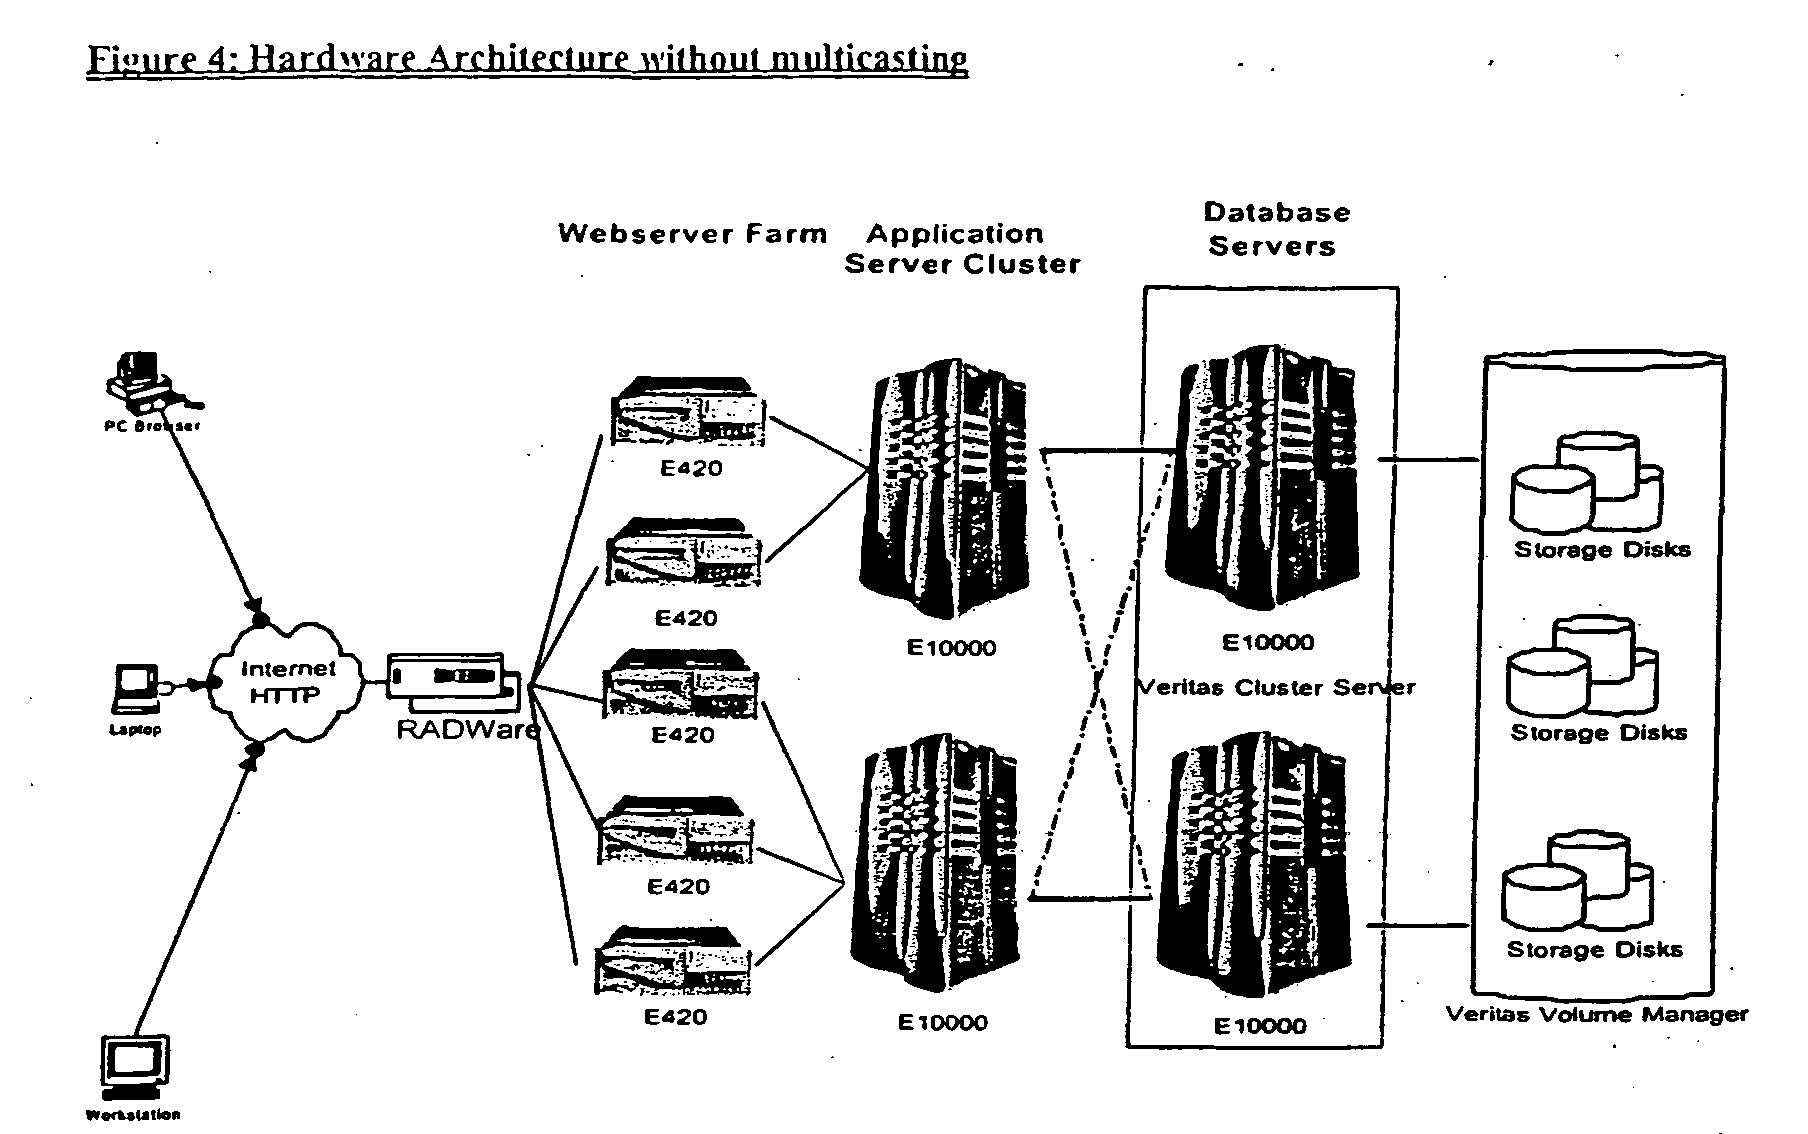 Ep1482404a2 Systems Methods And Articles Of Manufacture For E420 Engine Diagram Figure 00660001